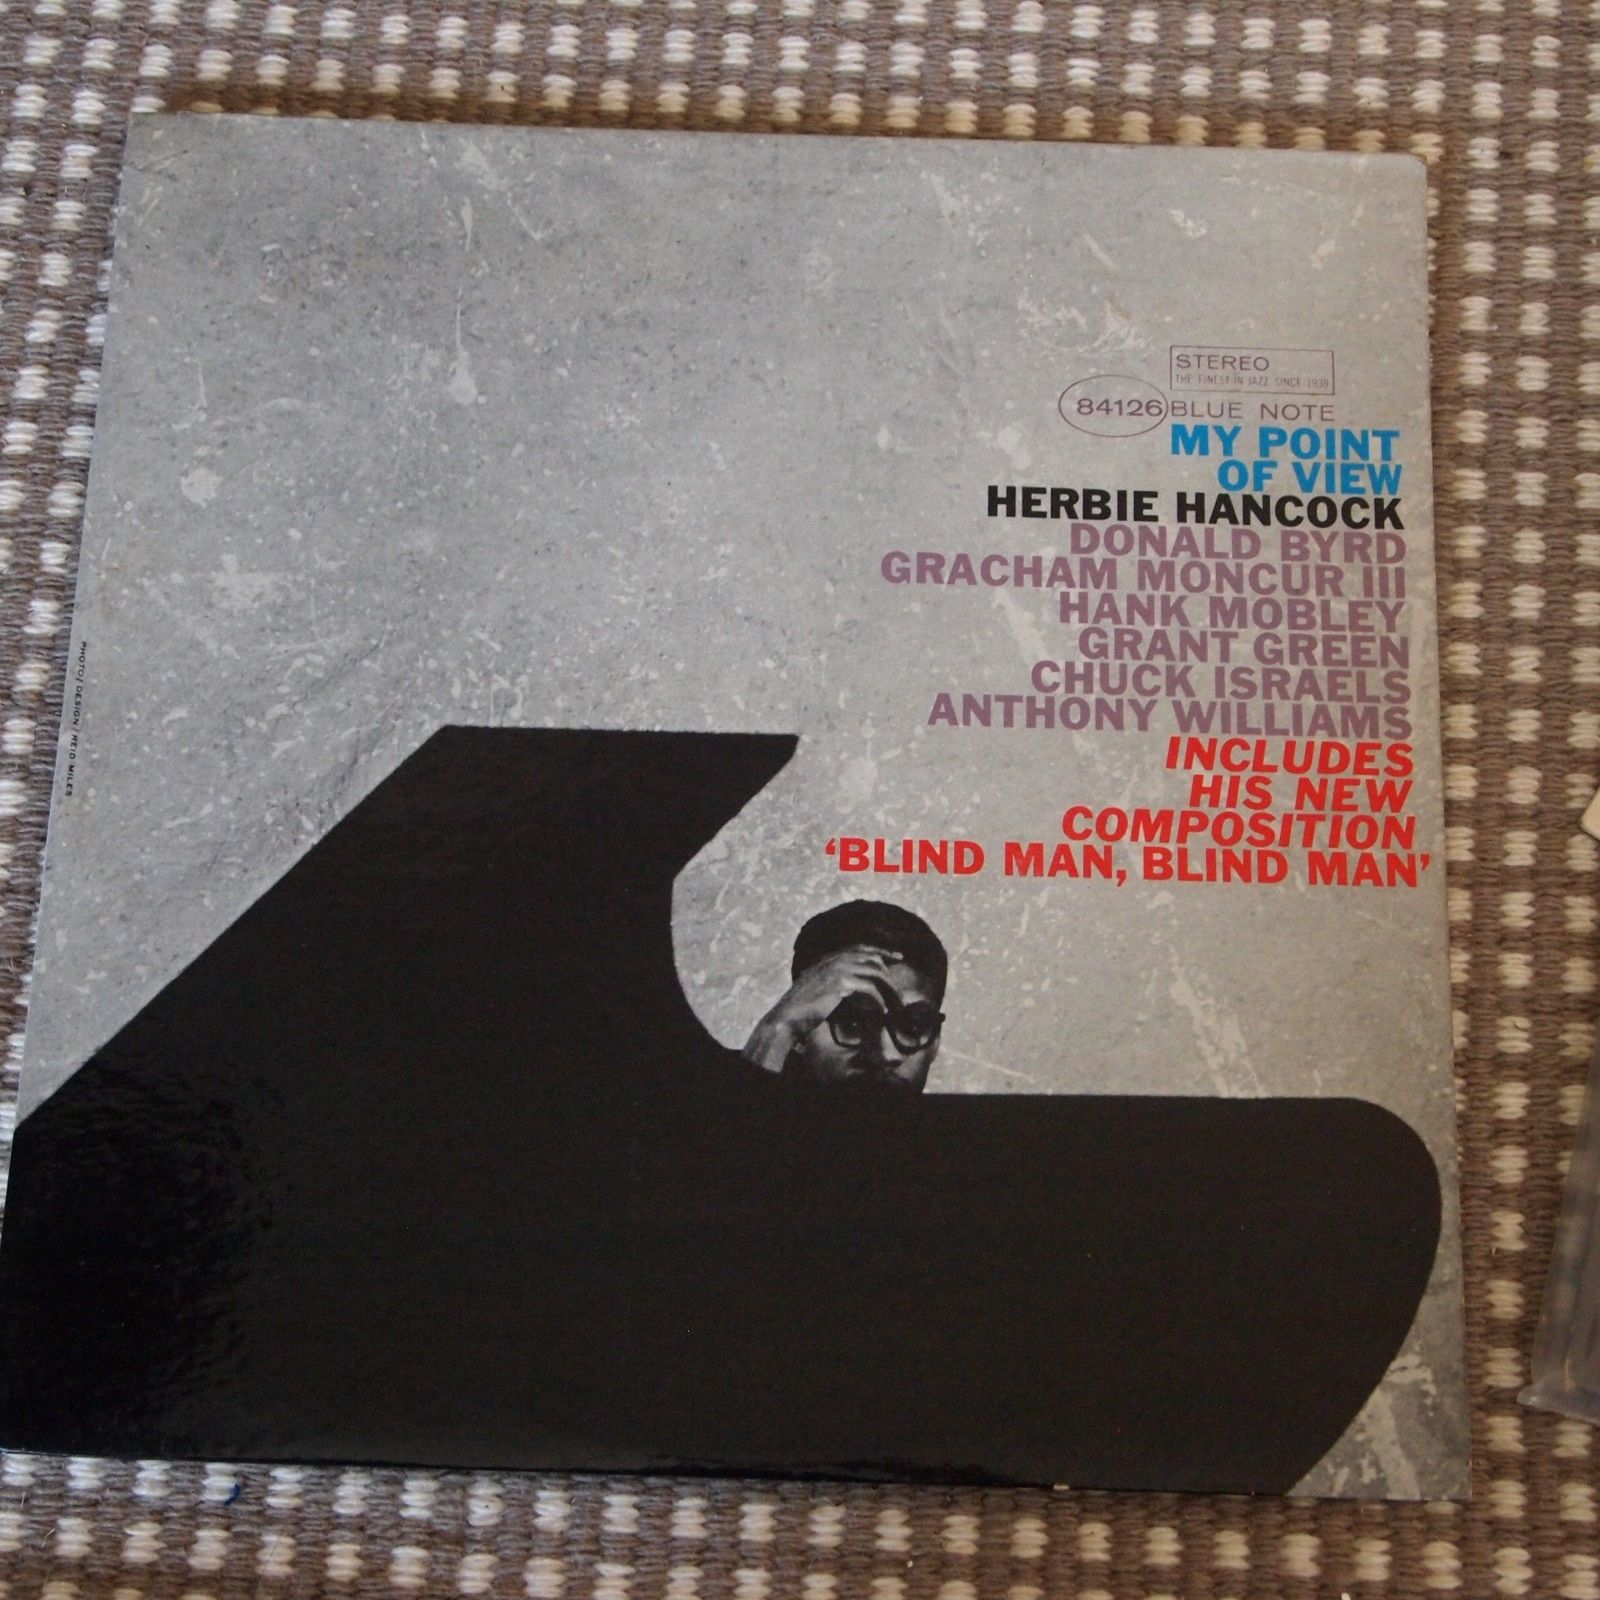 HERBIE HANCOCK MY POINT OF VIEW BLUE NOTE LP BST 84126 DG VAN GELDER EAR NY NM